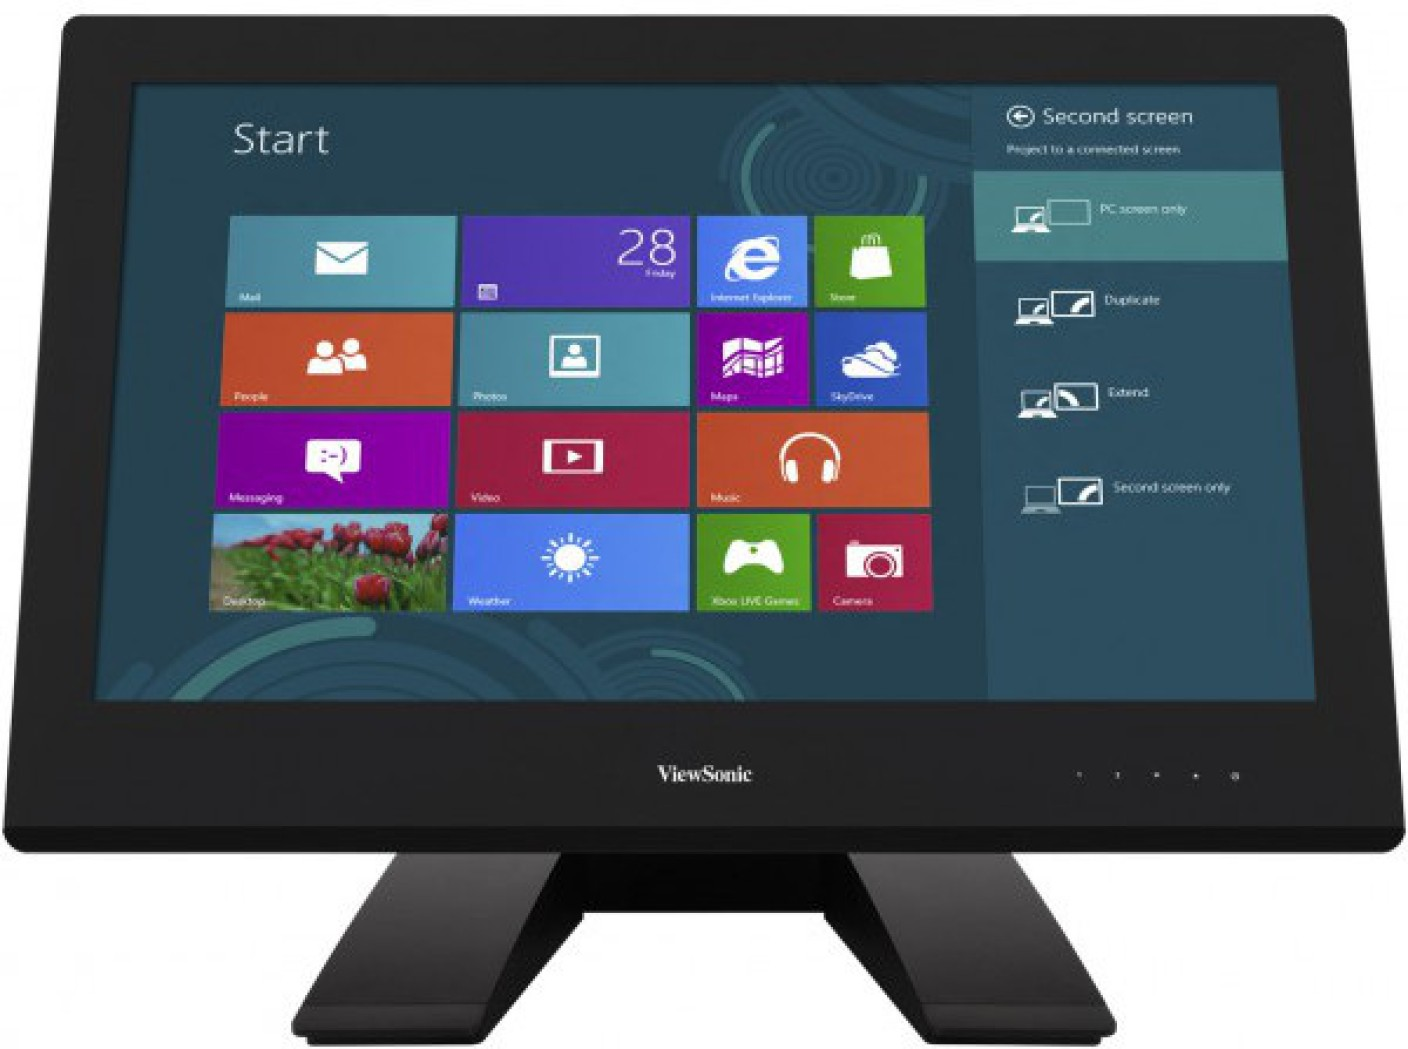 View Sonic 23 Inch Full Hd Led Backlit Ips Panel Monitor Price In Viewsonic 28 Share